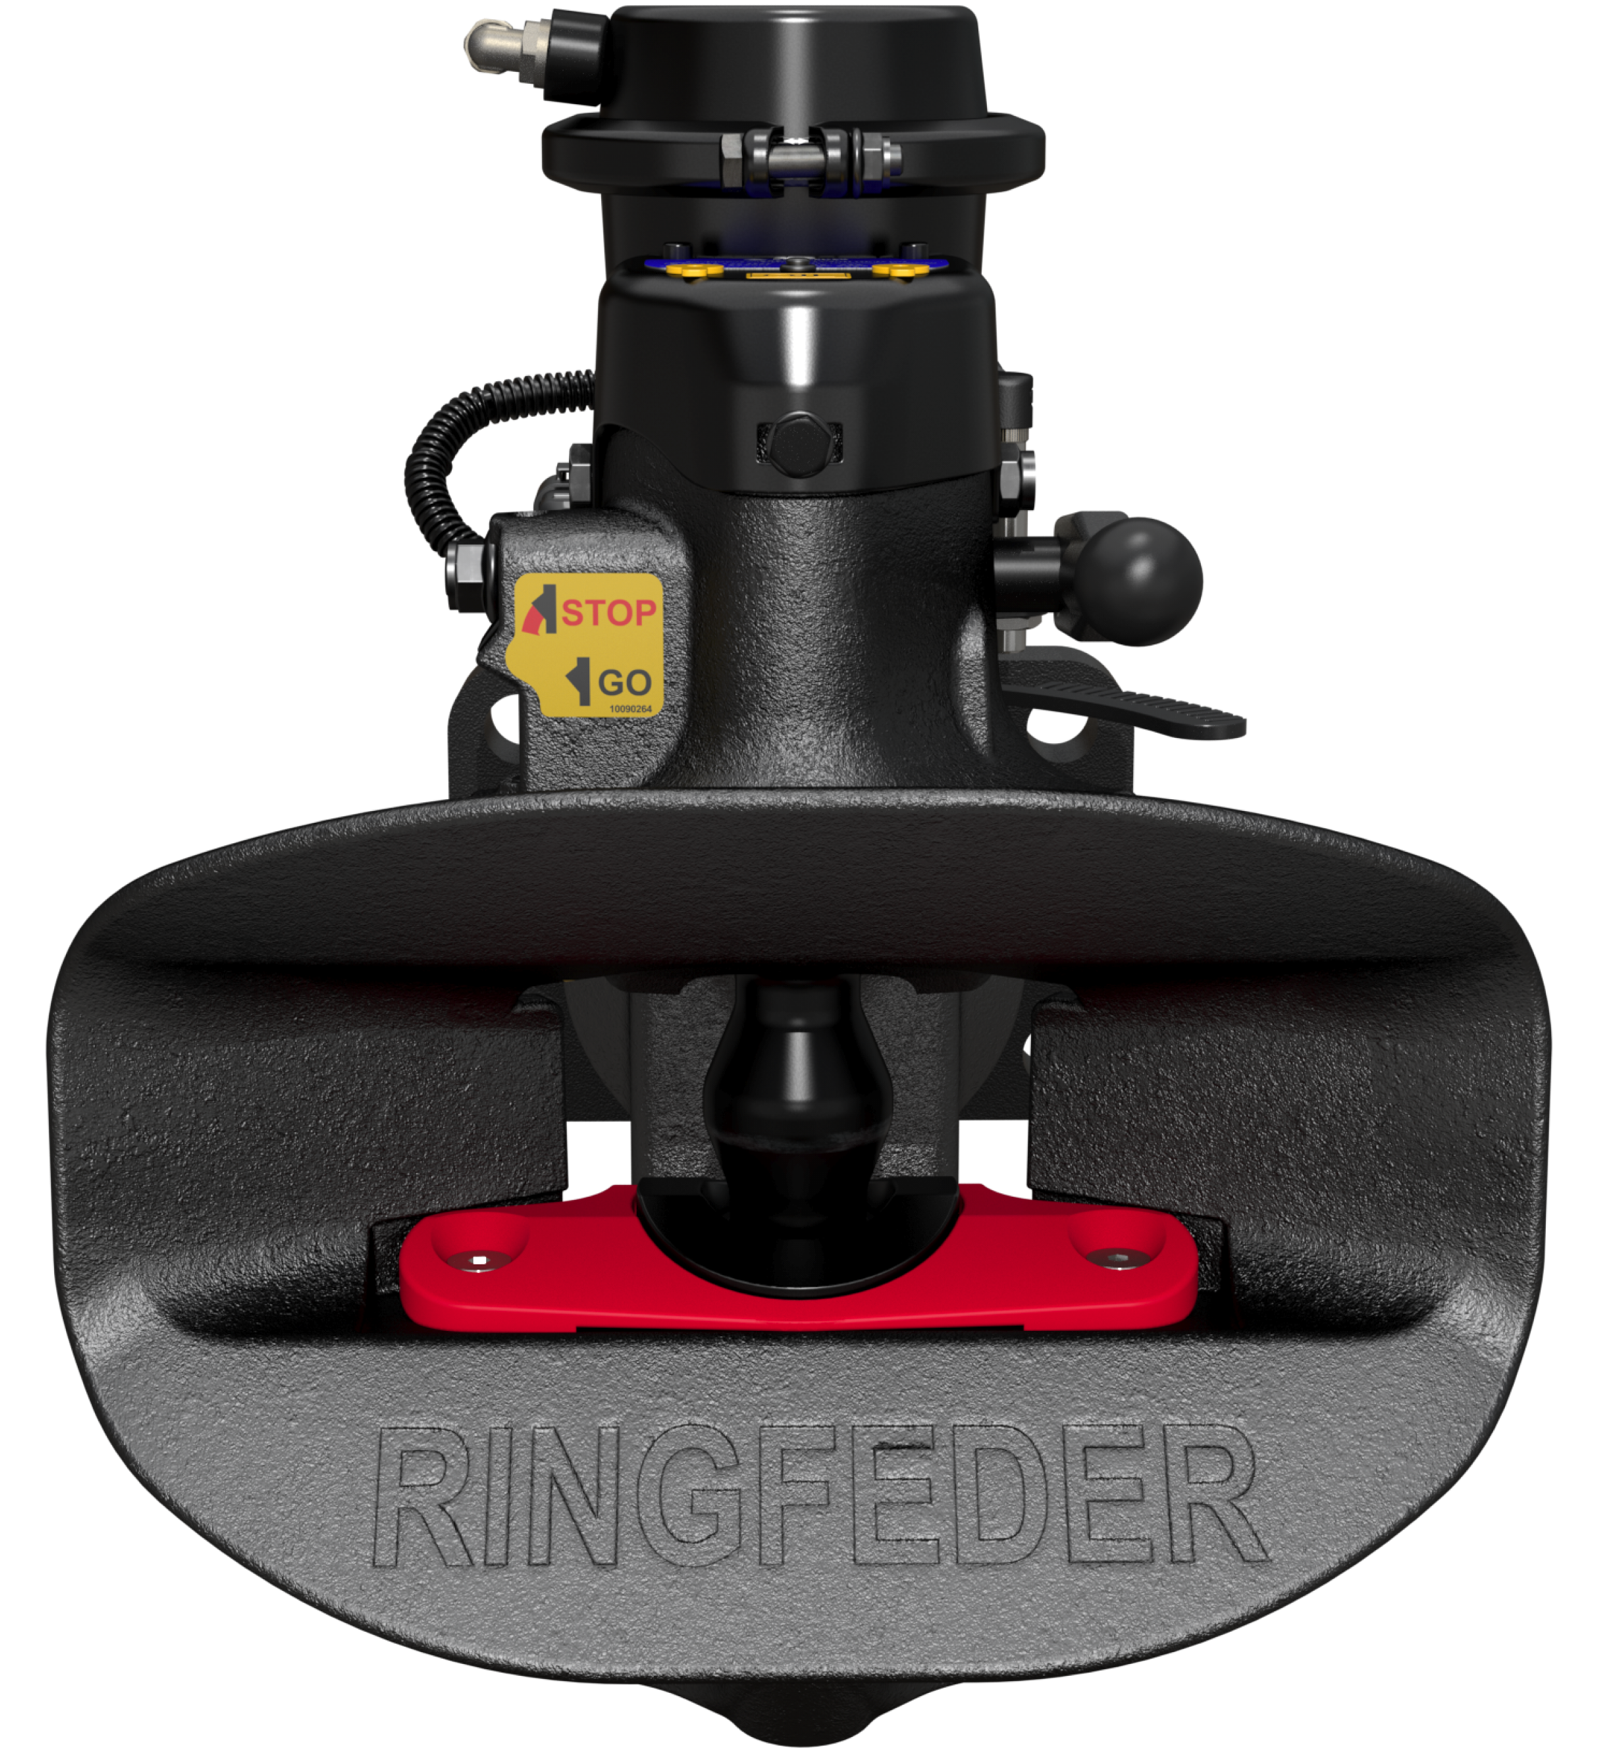 Ringfeder product front